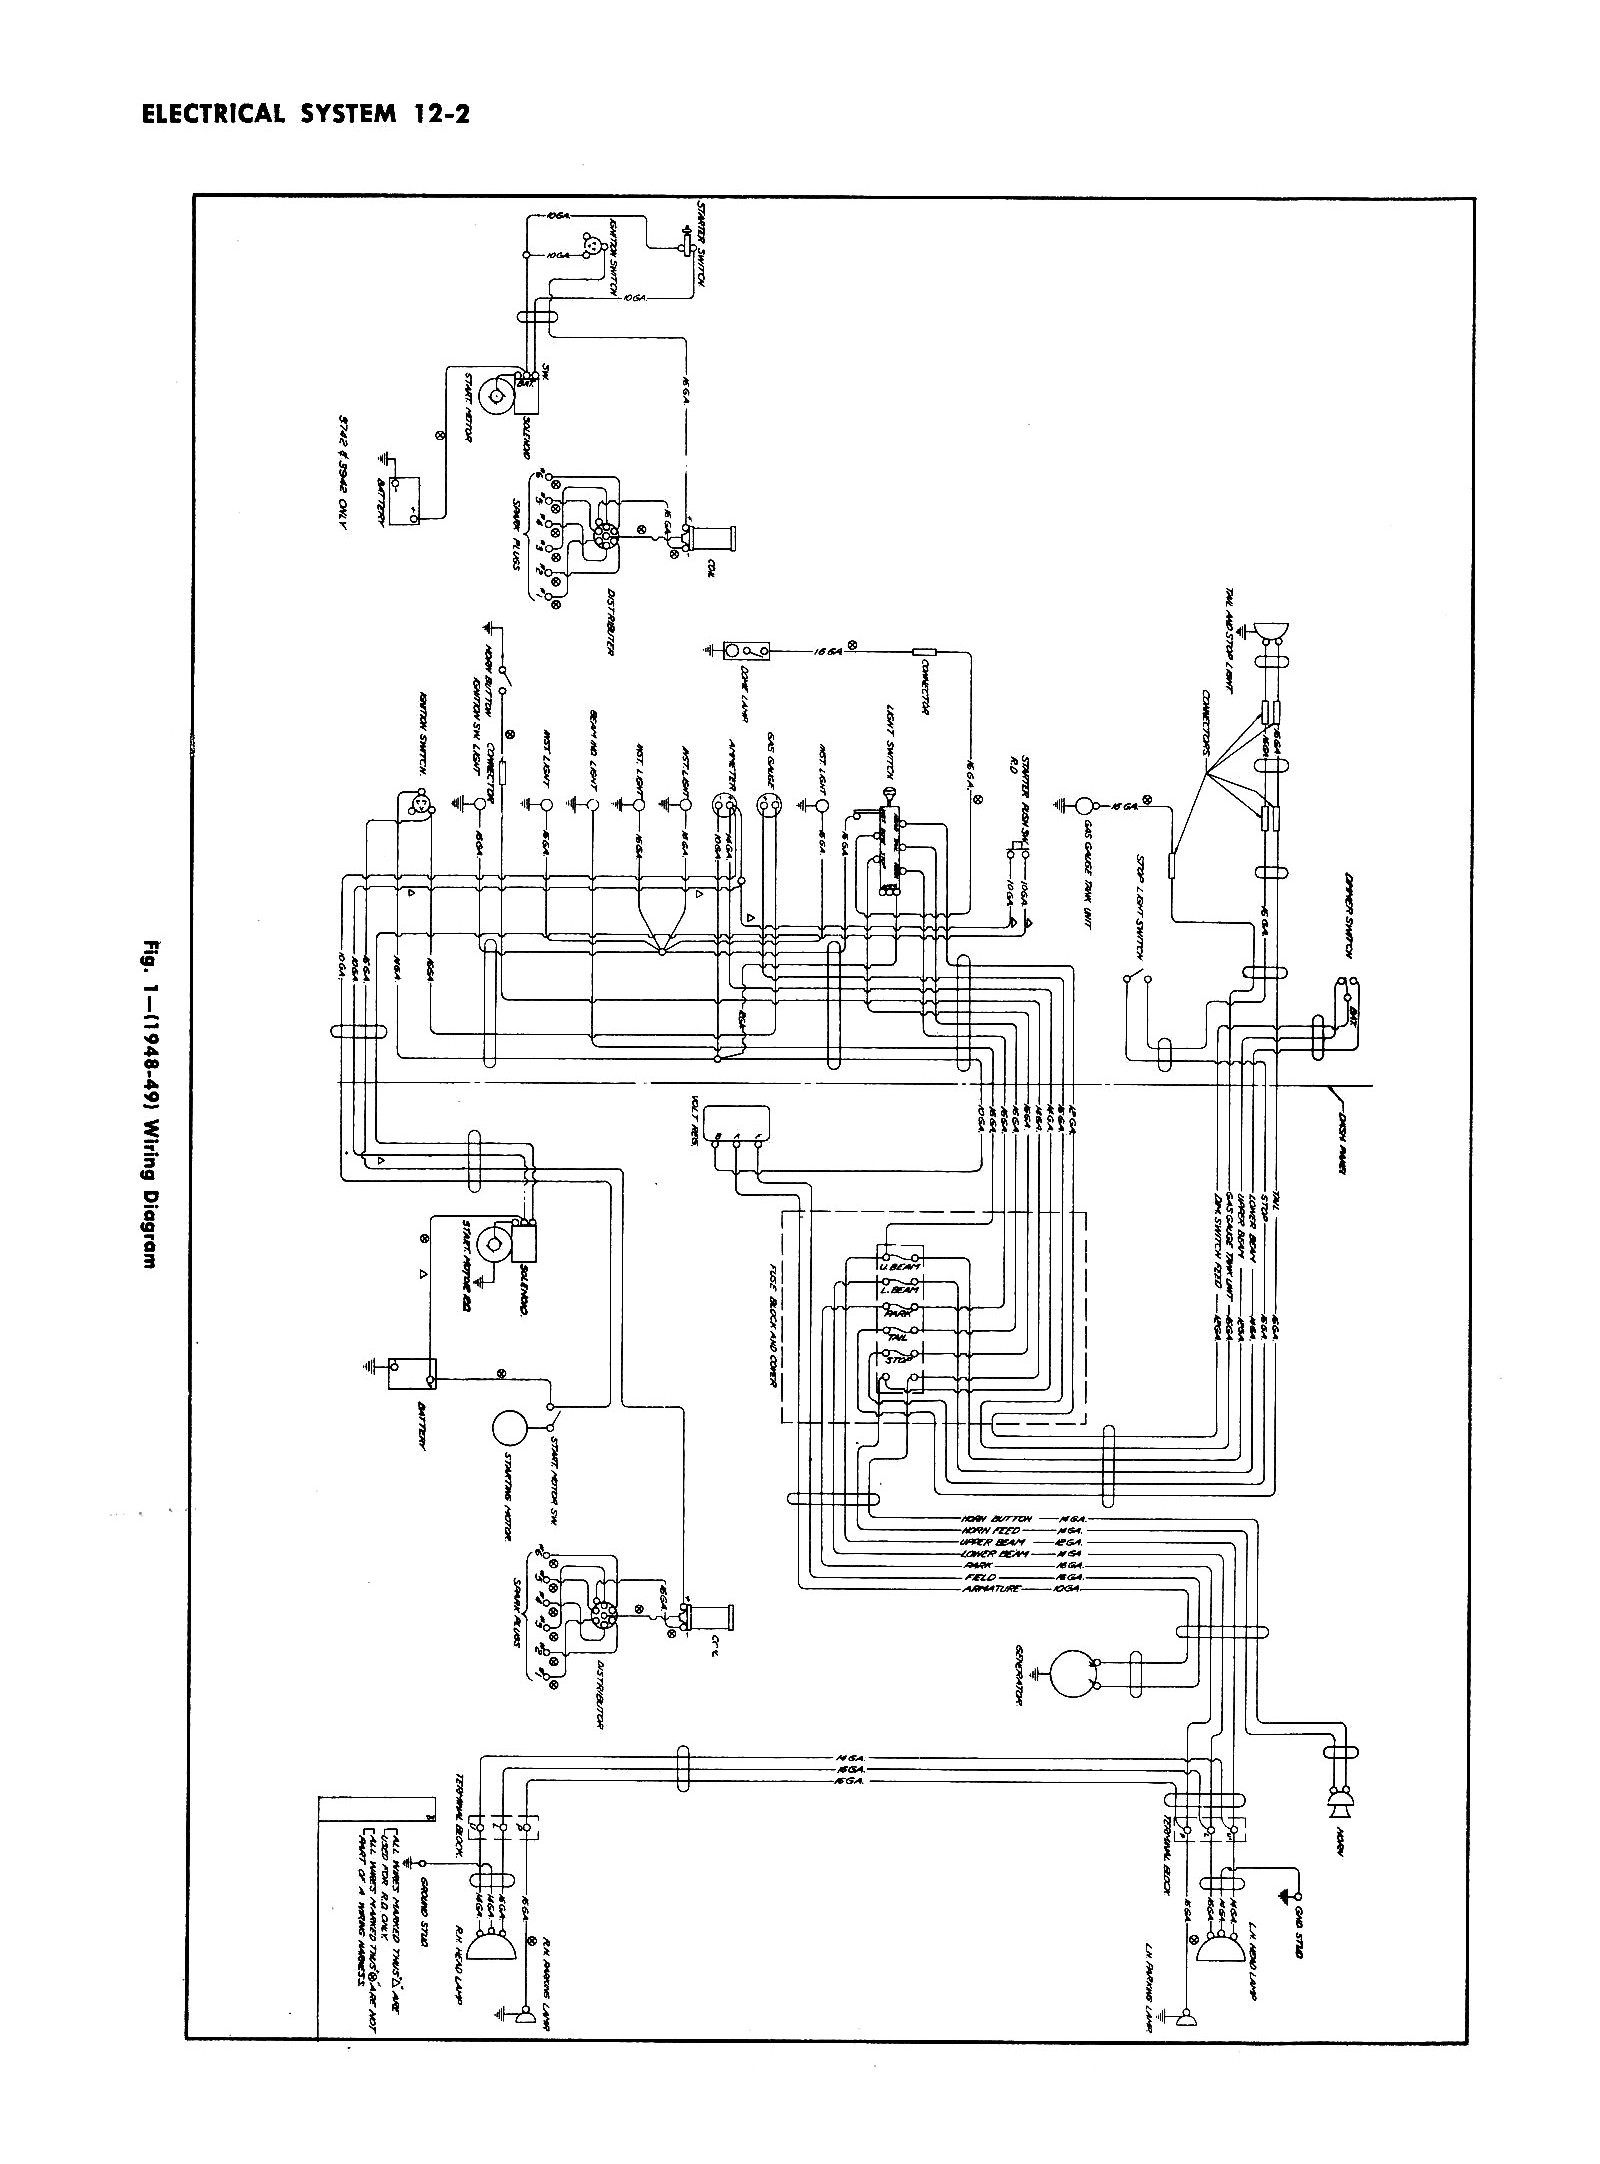 48car 1949 cadillac wiring harness new general motors wiring harness Ford Schematics at bayanpartner.co